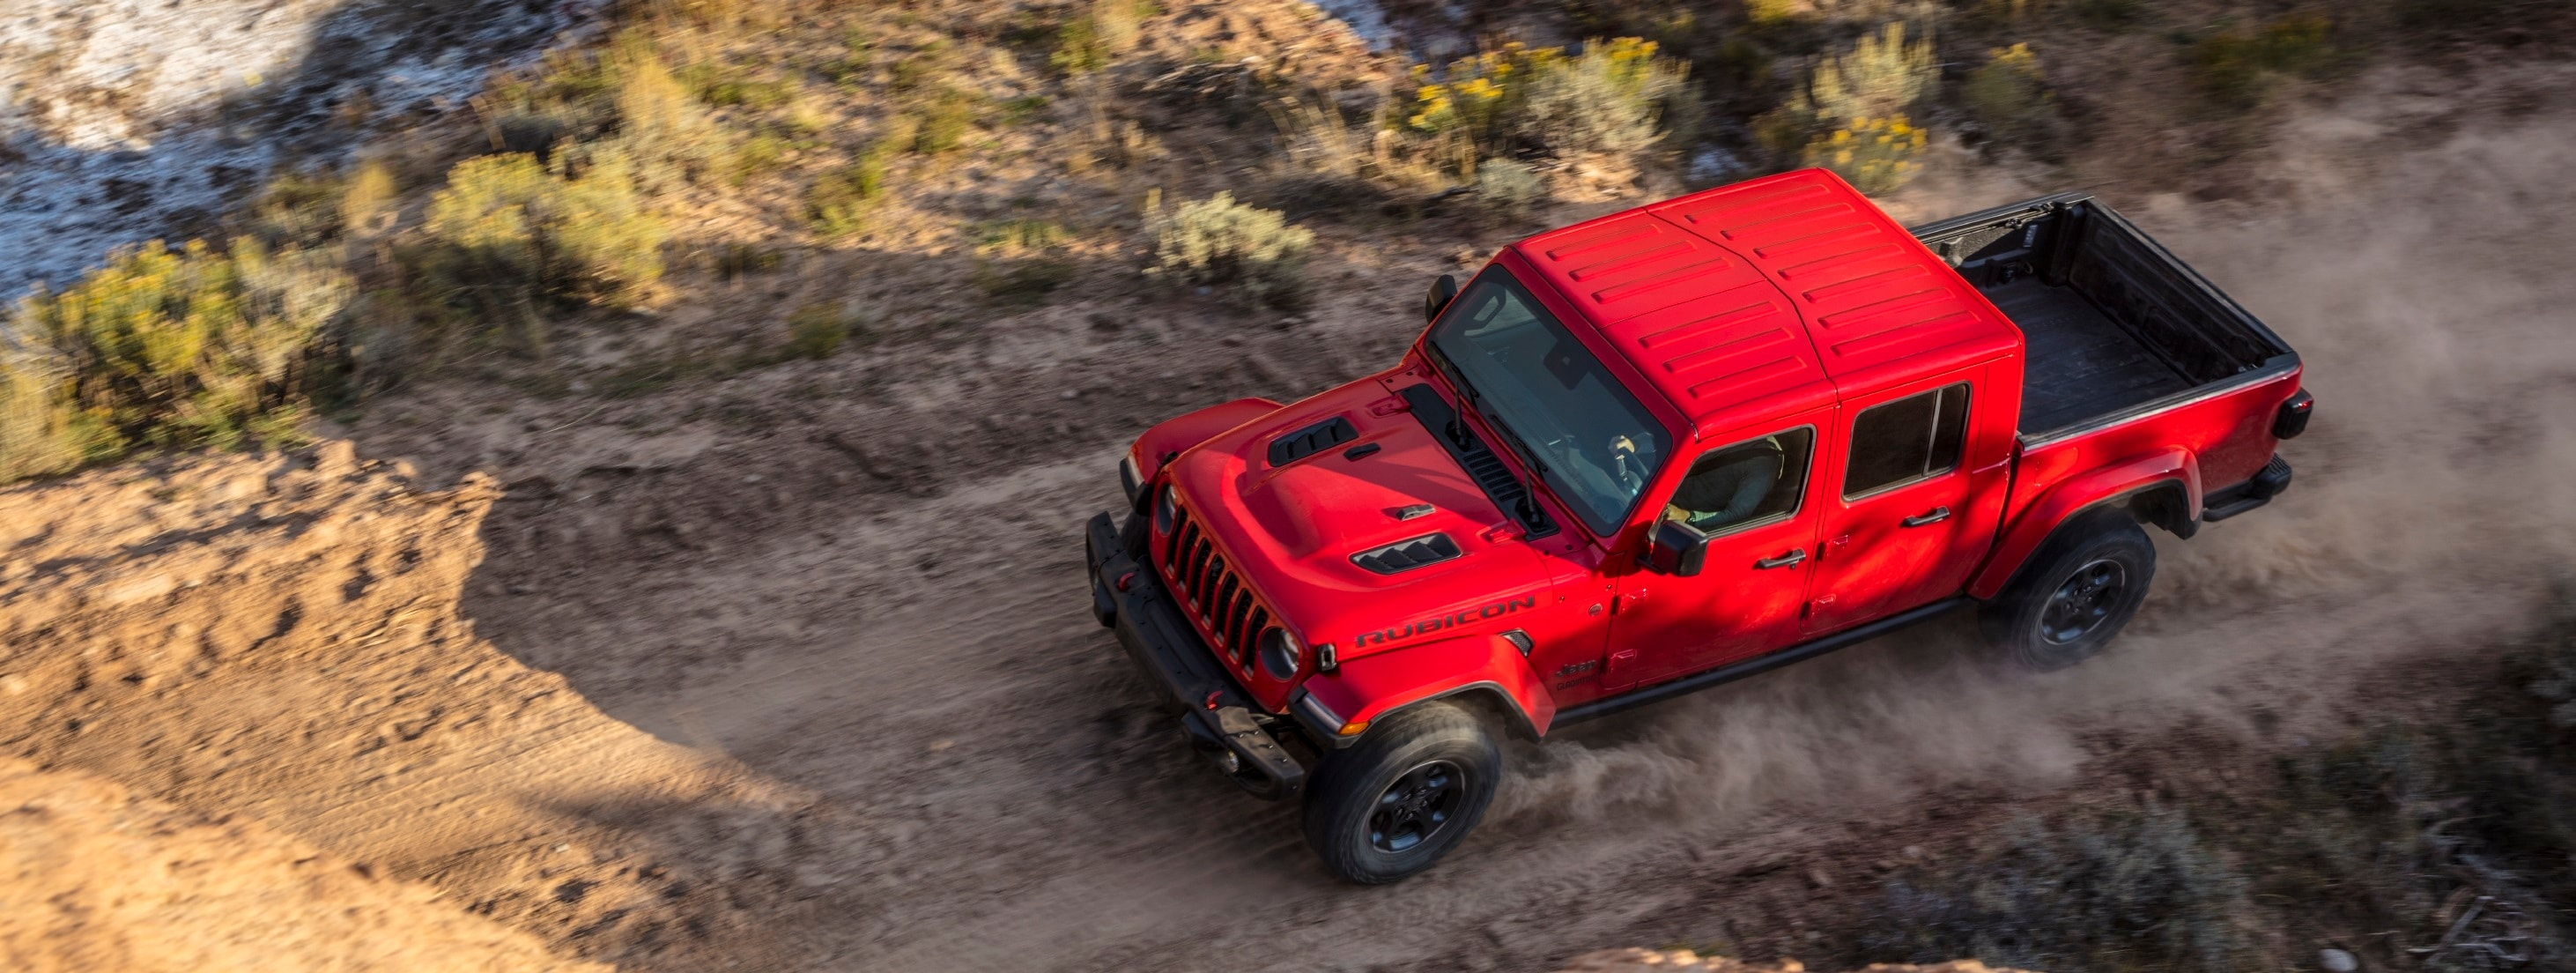 2021 Jeep Gladiator - Off road